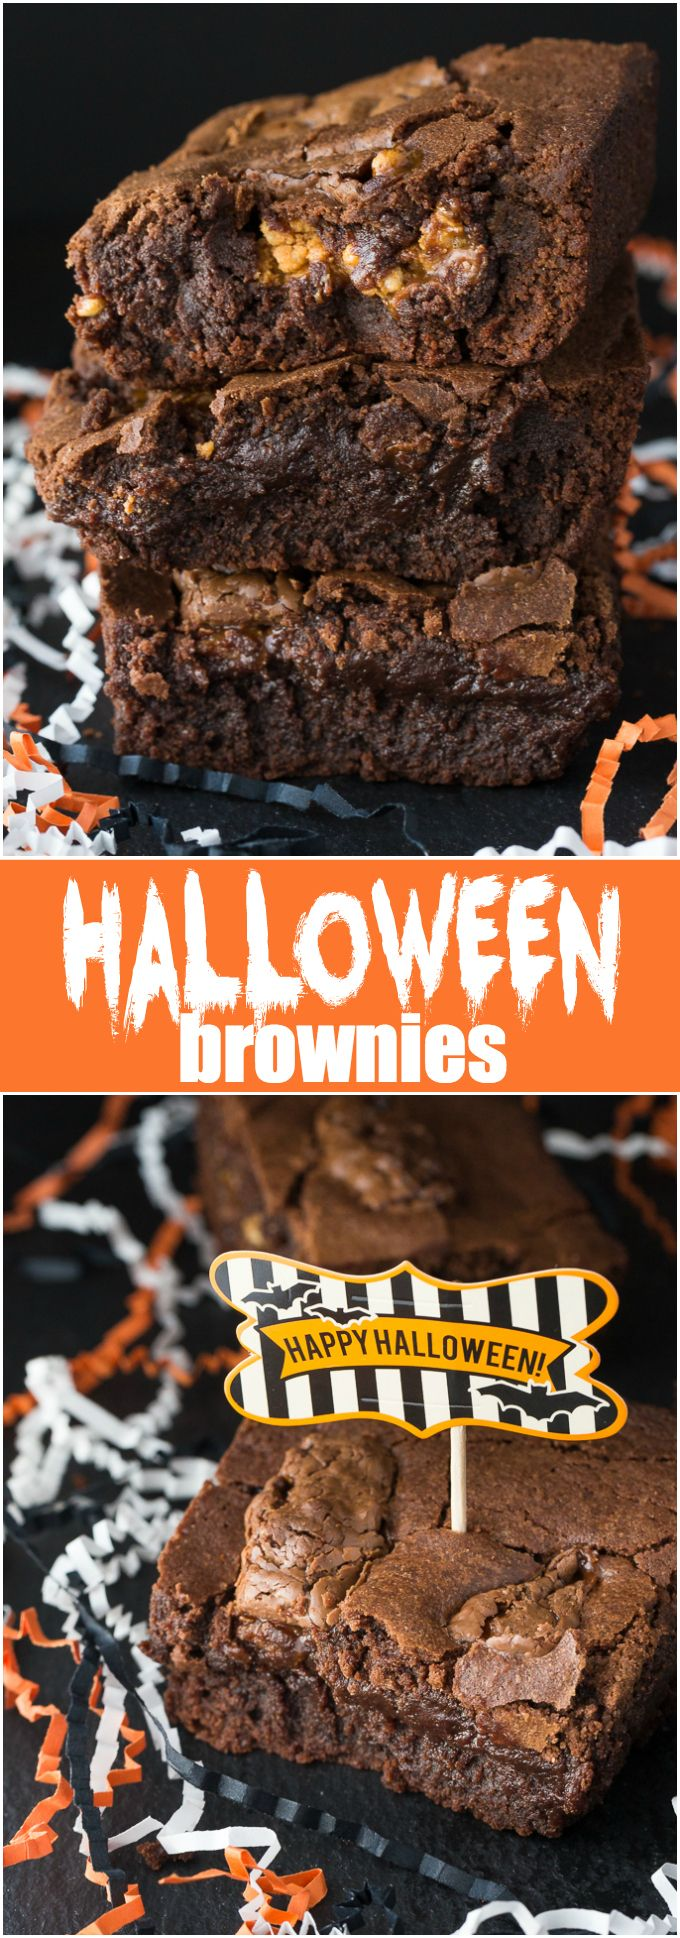 Halloween Brownies - Rich, fudgey and chewy. This is one of my favourite brownie recipes that I make over and over again for my family. #GhoulishGrub #ad